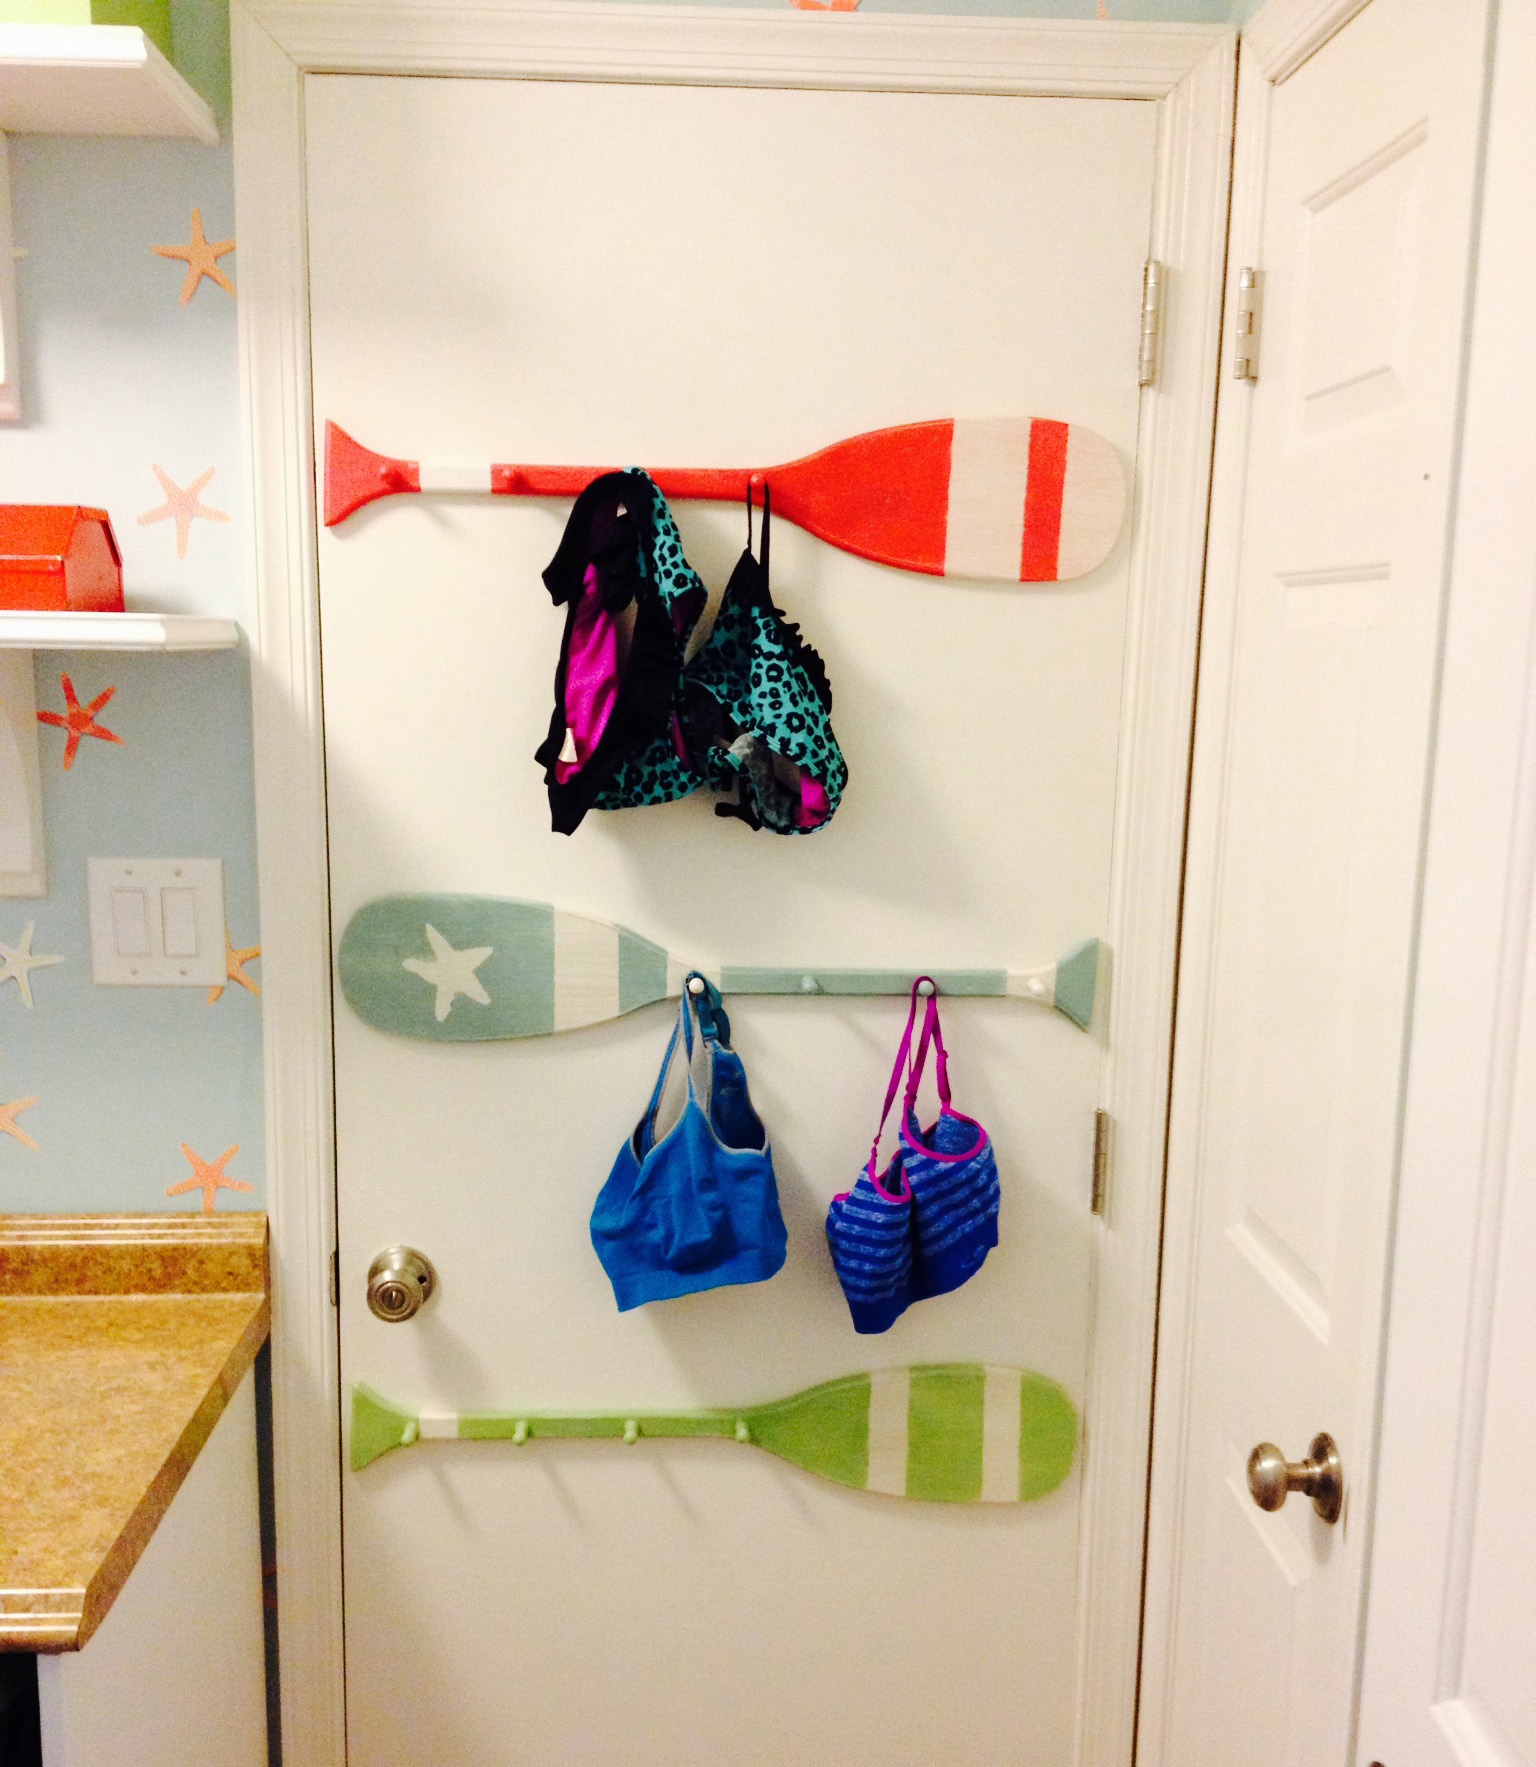 Laundry Room 7: Paddles to Dry my Laundry